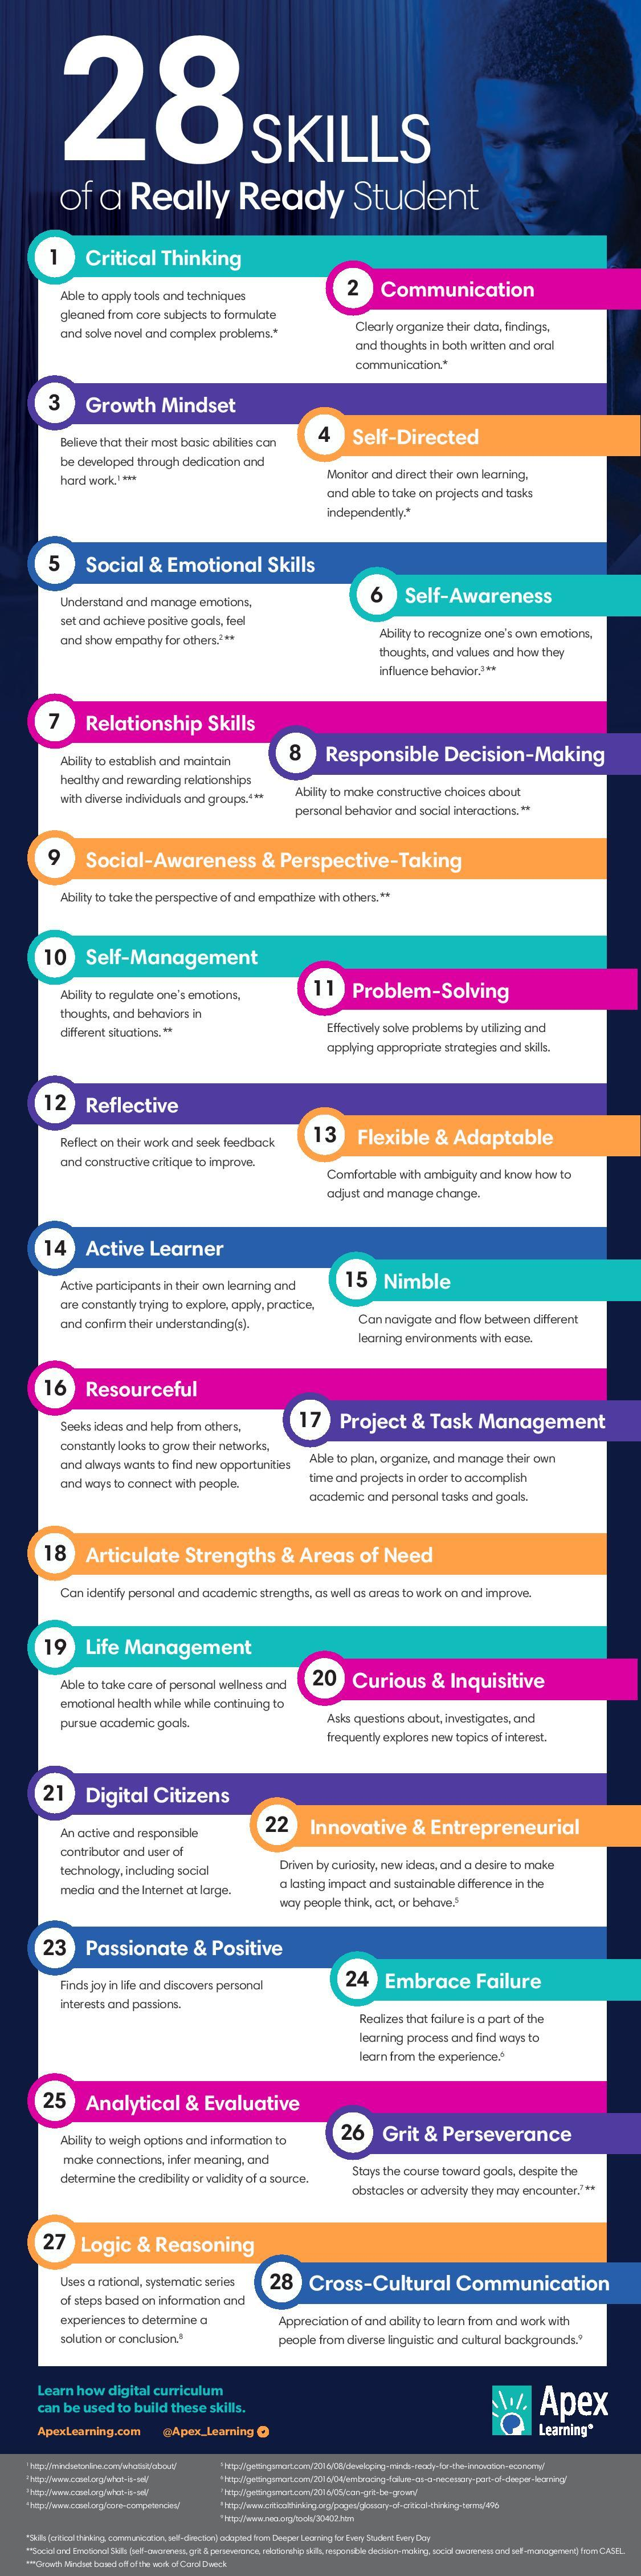 28 Skills Of A Really Ready Student Infographic